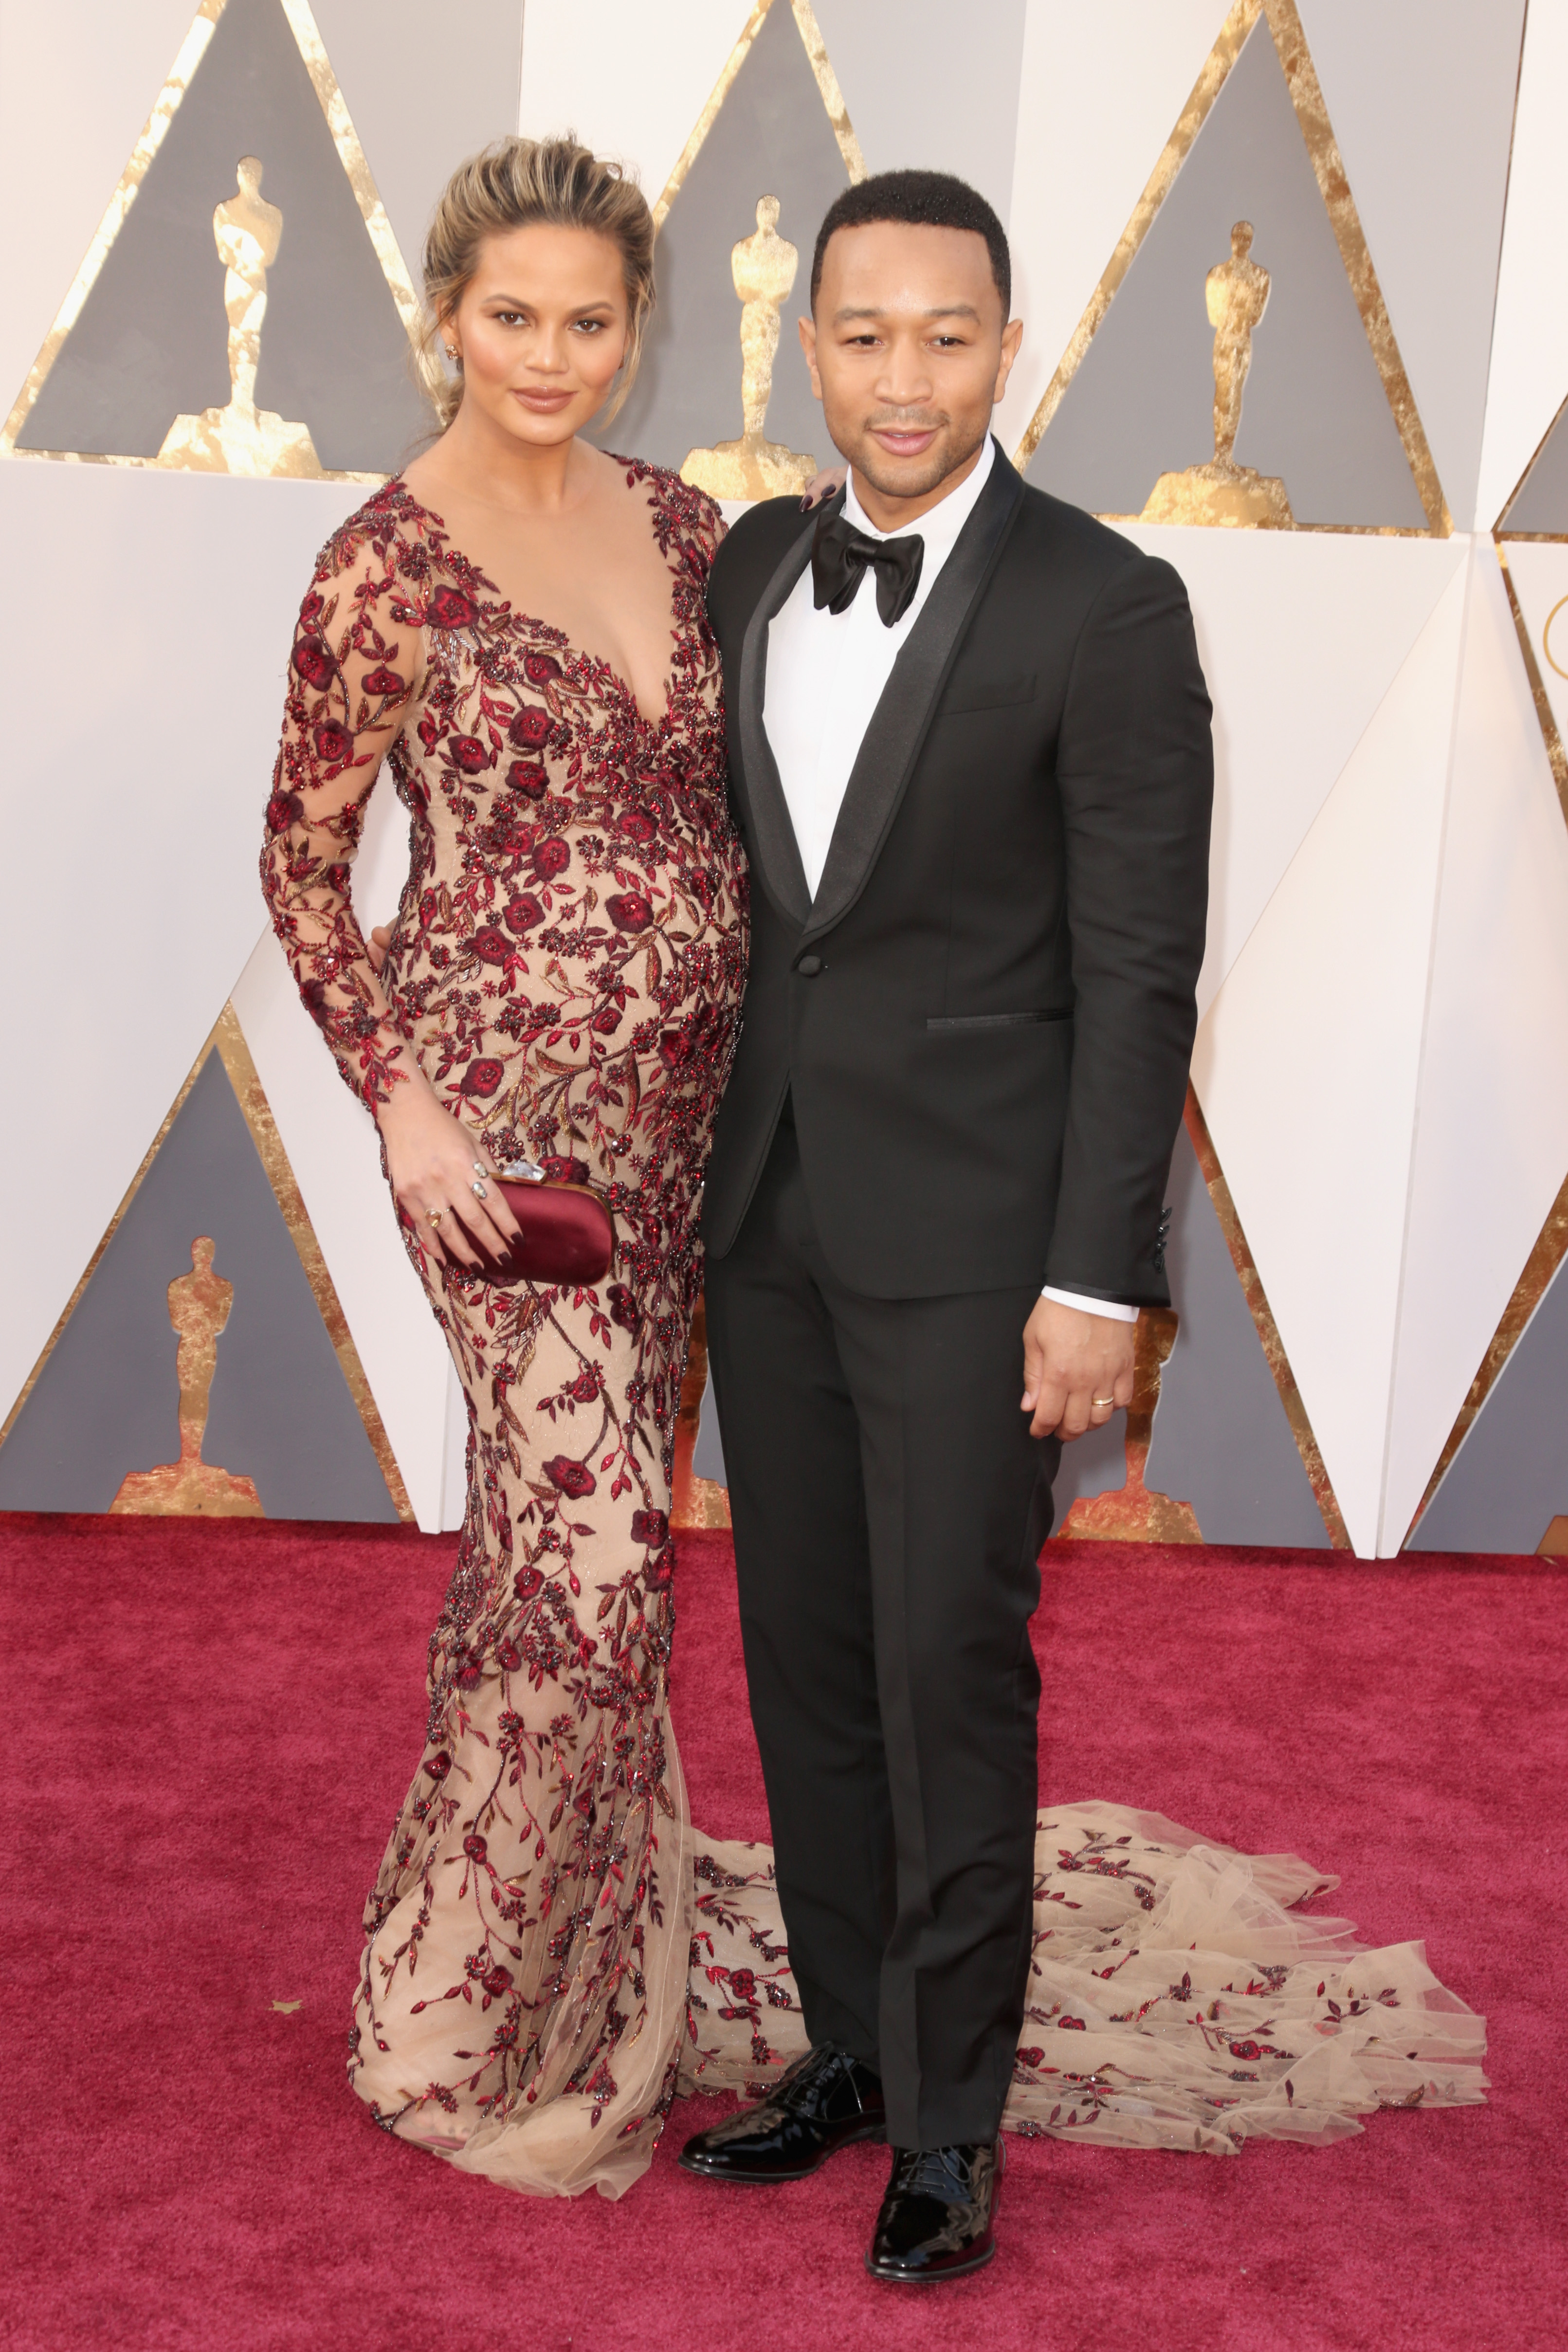 Chrissy Teigen and John Legend attend the 88th Annual Academy Awards on Feb. 28, 2016 in Hollywood, Calif.